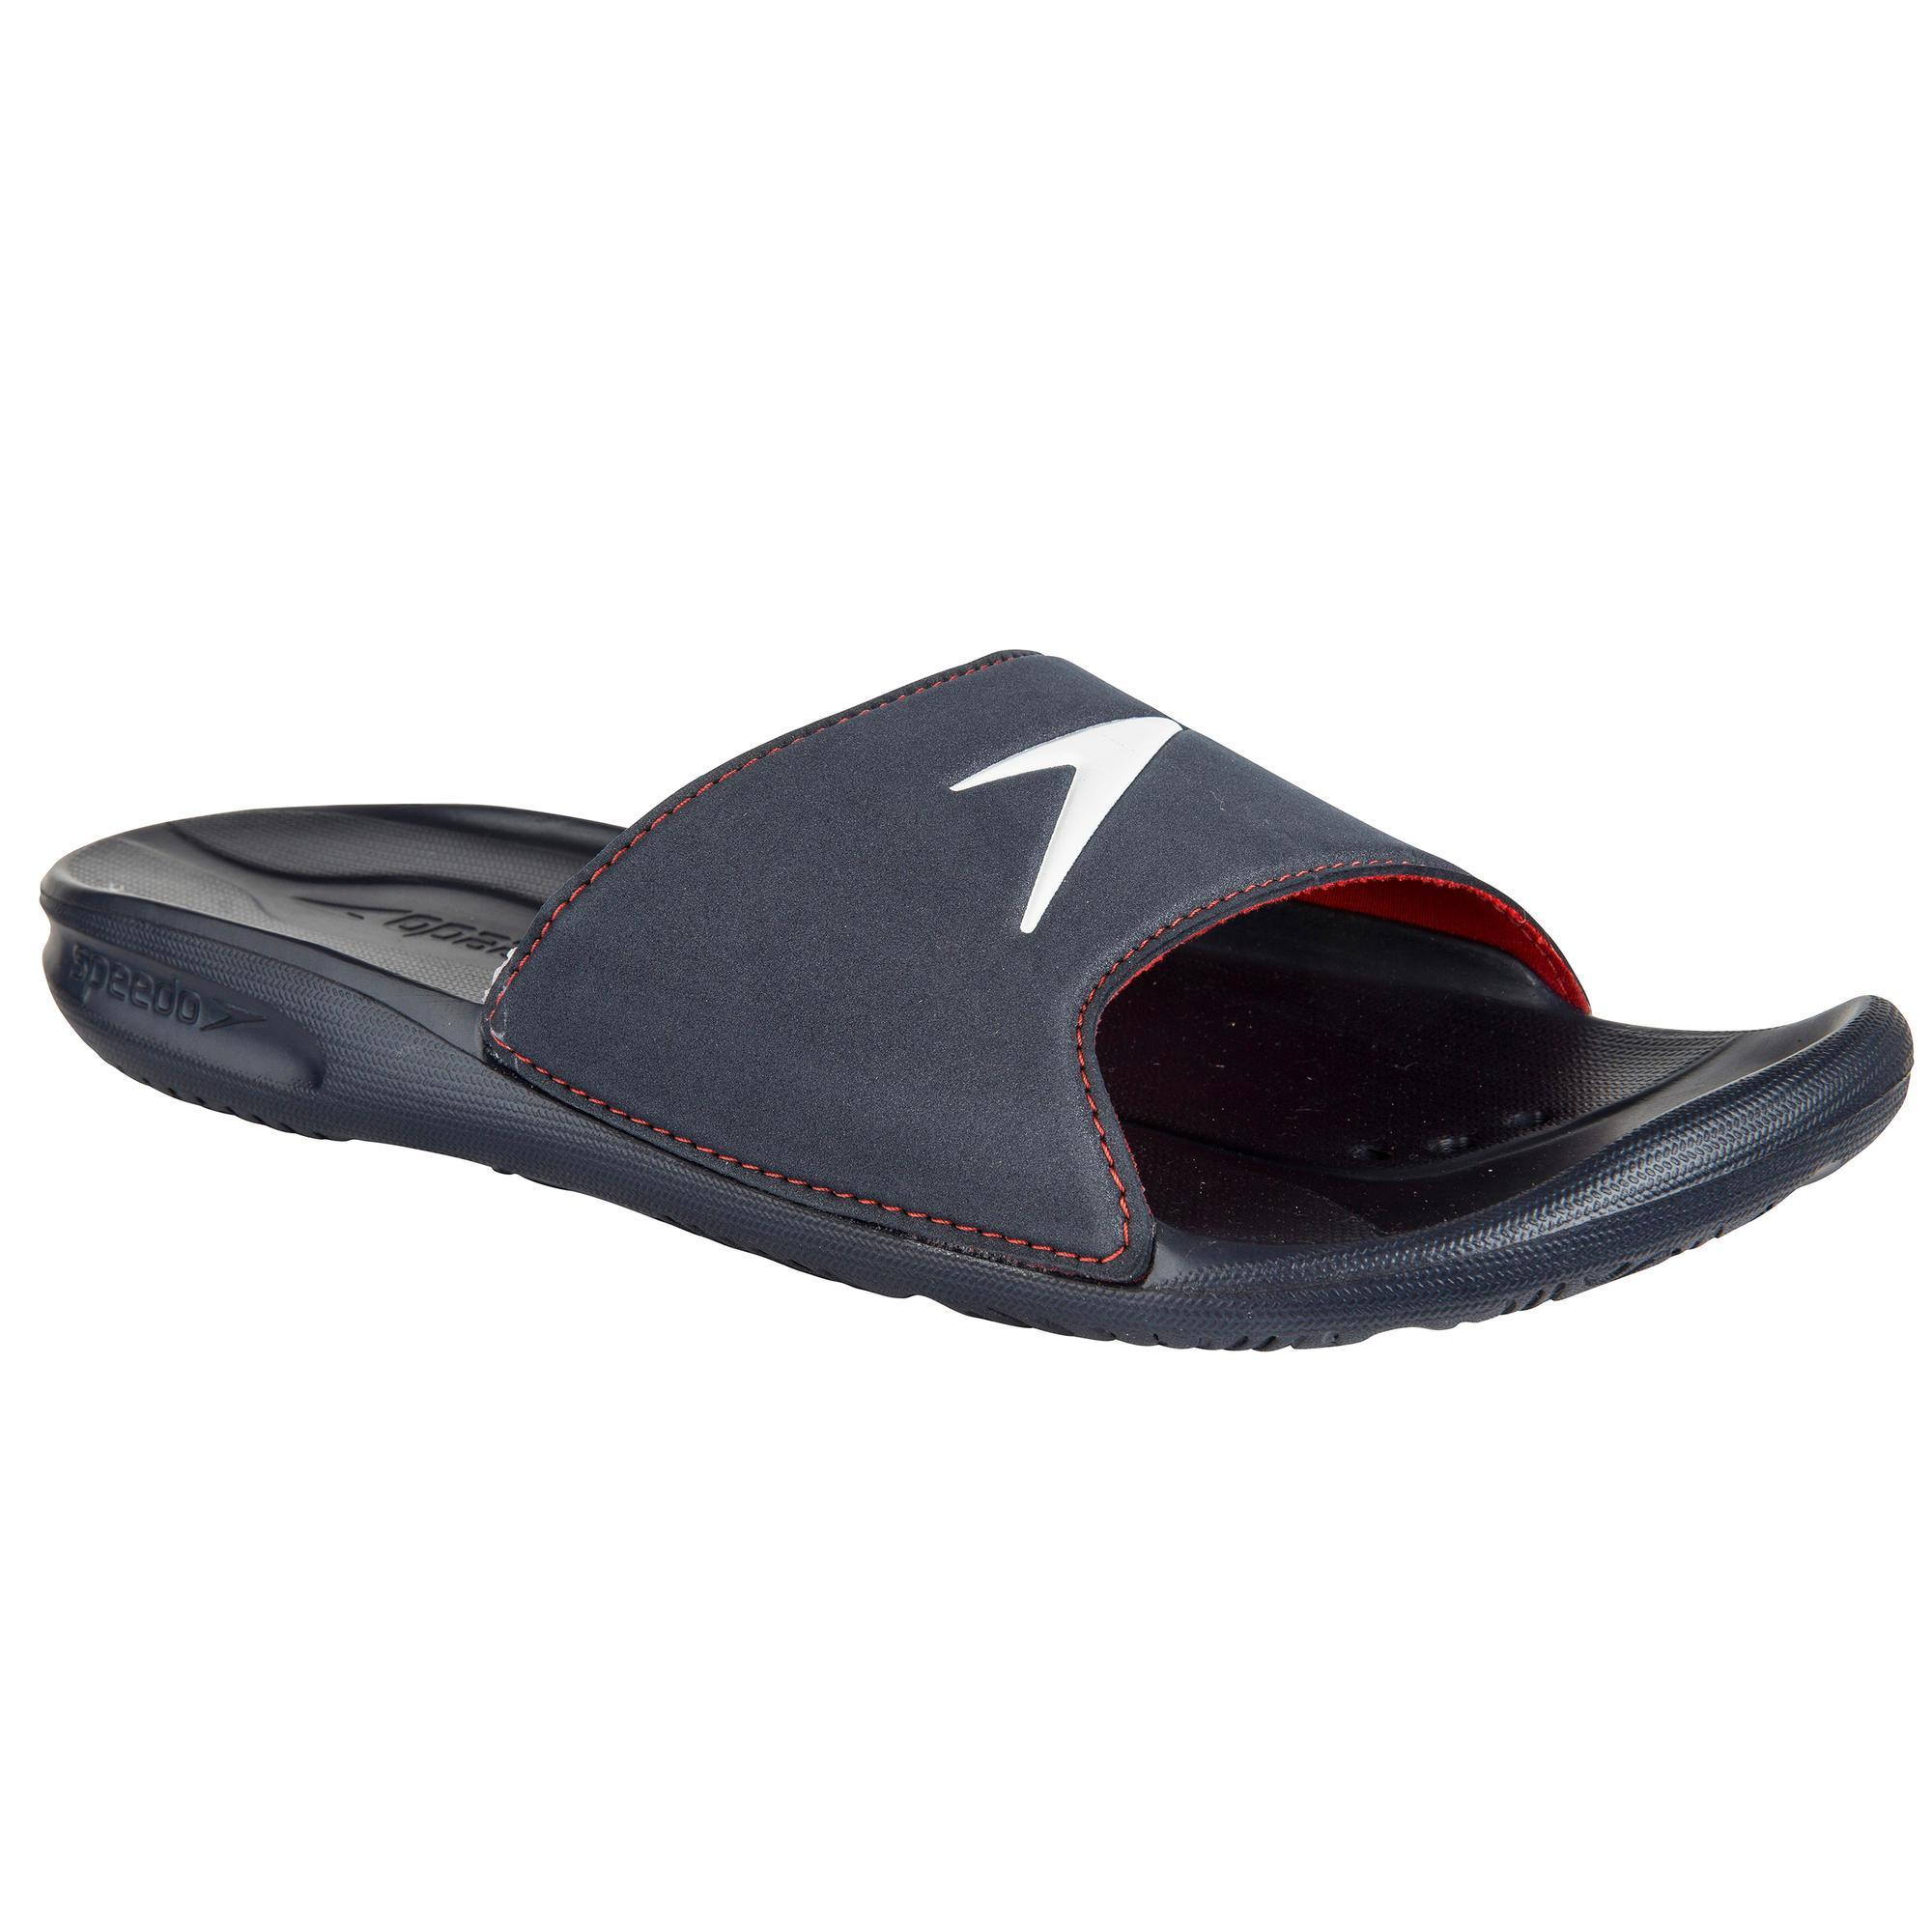 Speedo Herenslippers Atami Core blauw Speedo